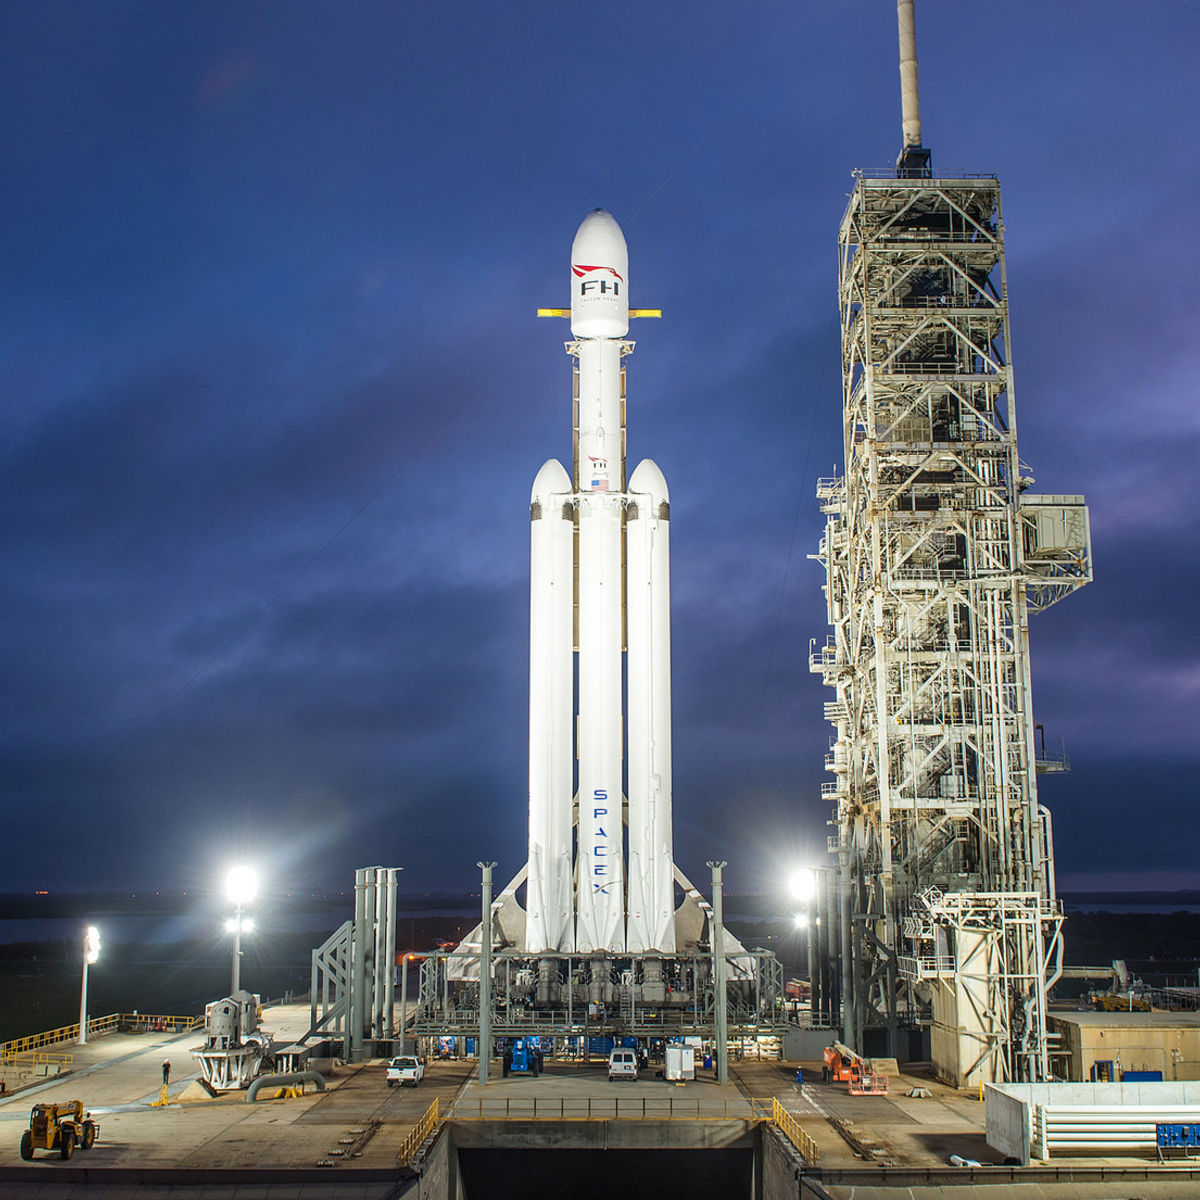 The Falcon Heavy sits on the launch pad in Florida, awaiting launch. Credit: SpaceX